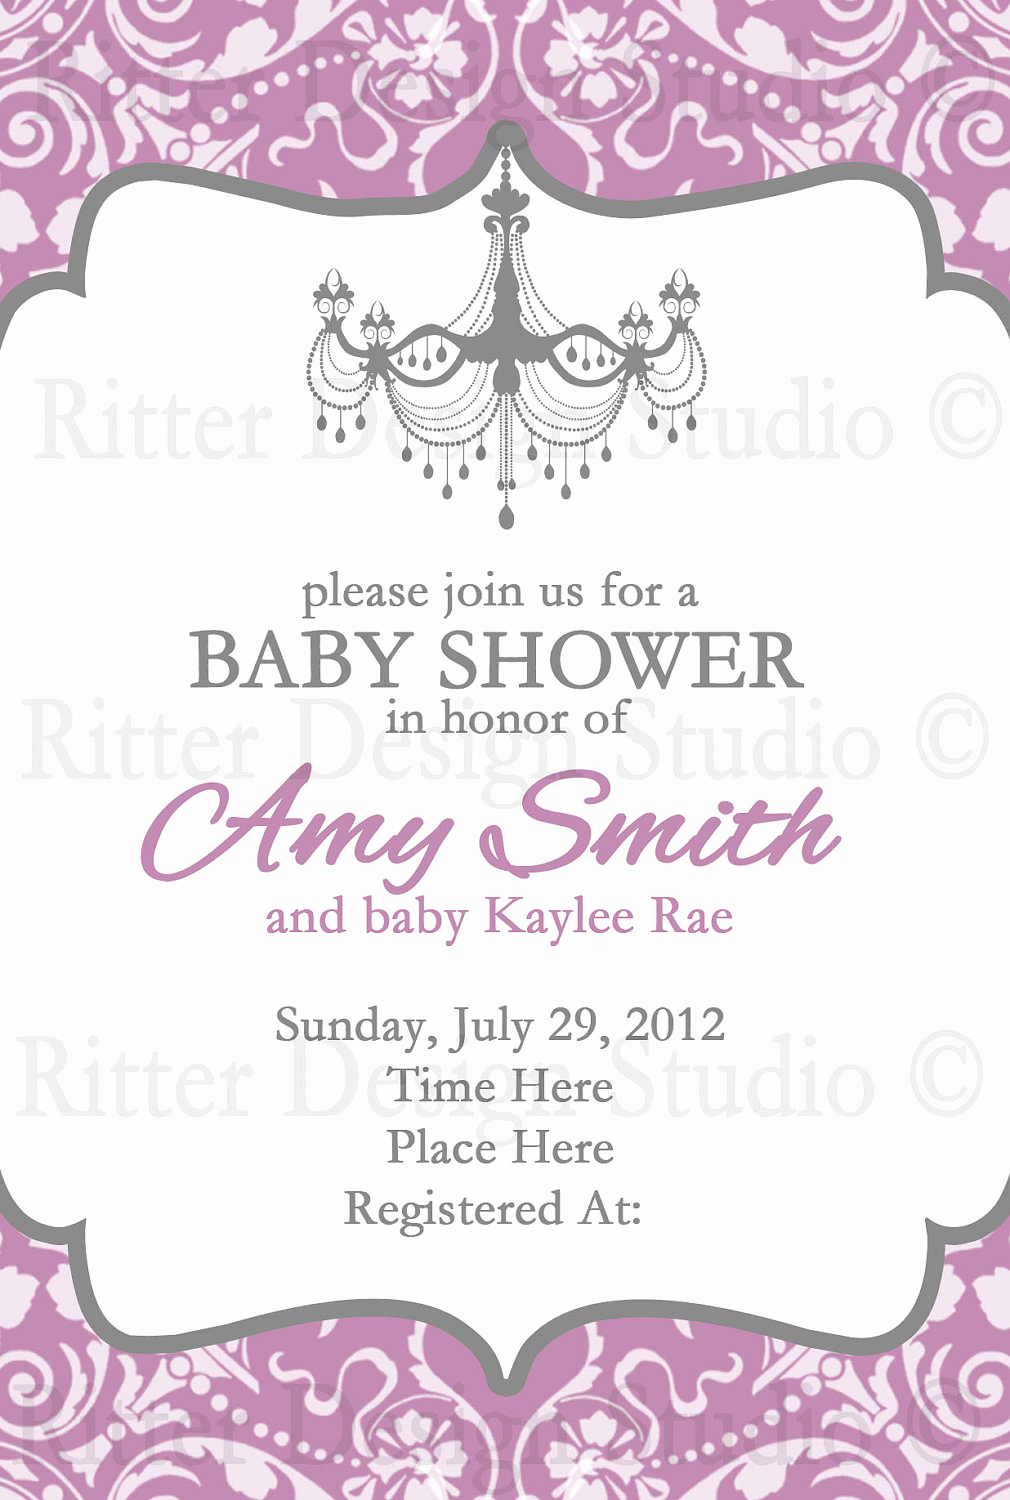 Diaper Shower Invitation Wording Lovely Elegant Baby Shower Invitation by Ritterdesignstudio On Etsy